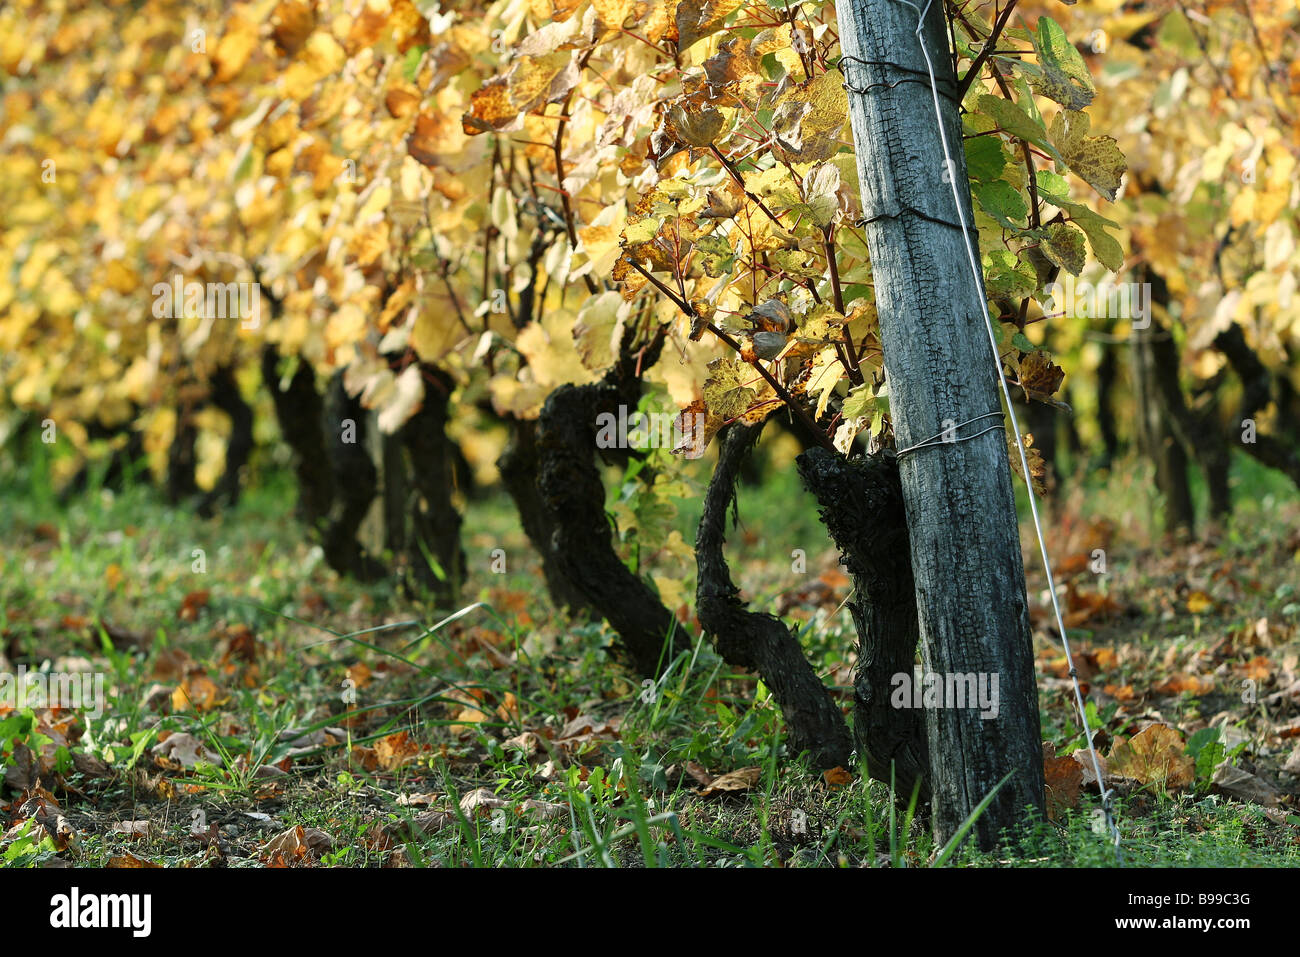 Grapevine supported by wooden stake, close-up - Stock Image